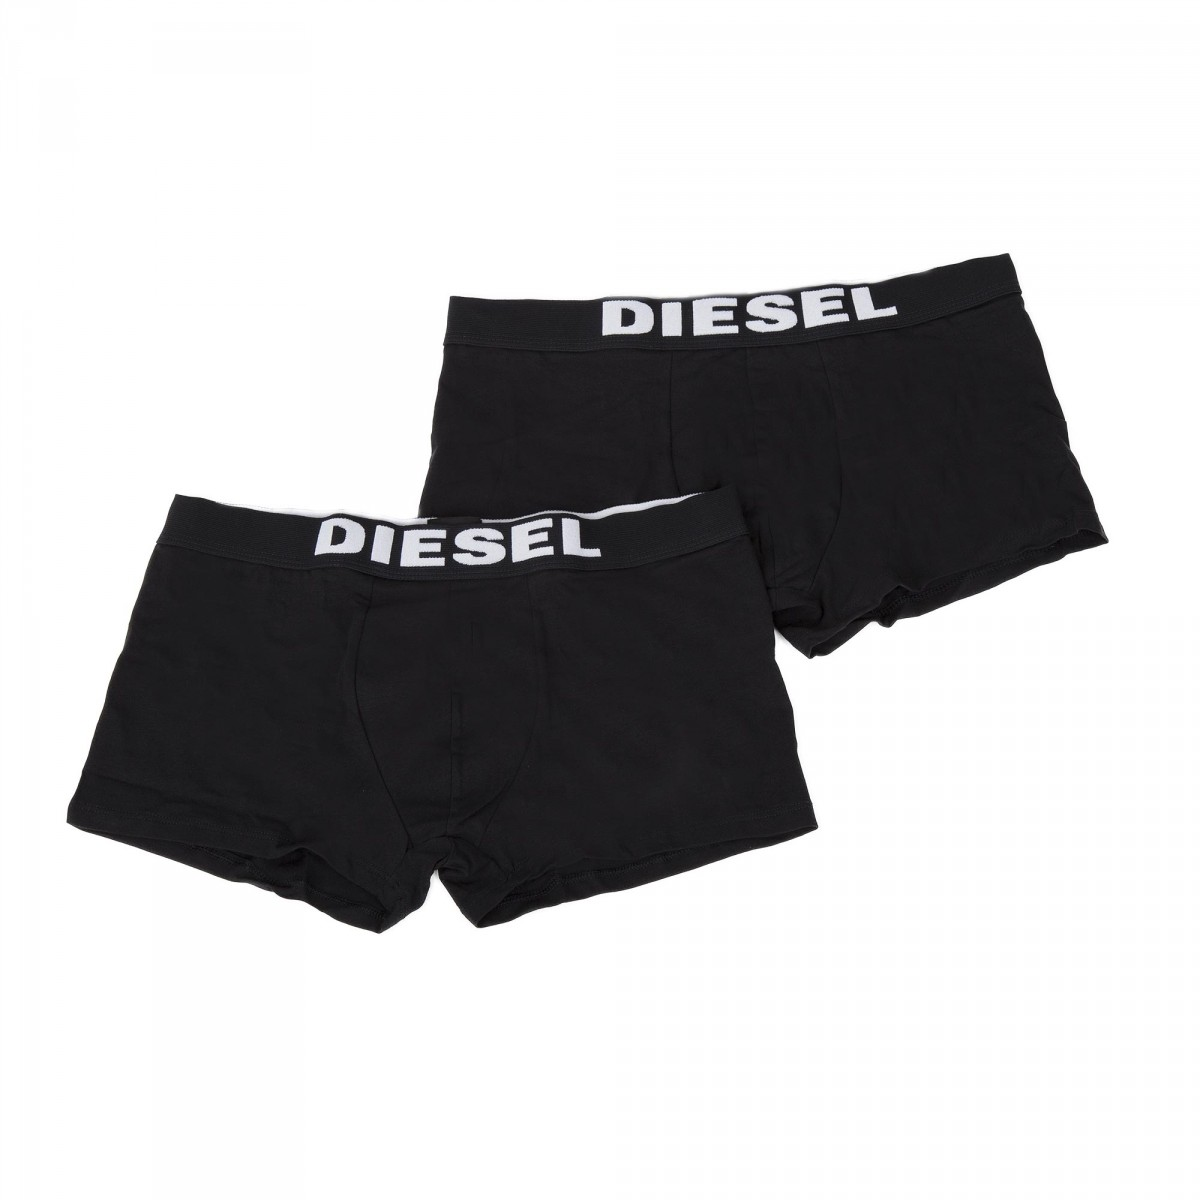 lot de 2 boxers noirs homme diesel prix d griff. Black Bedroom Furniture Sets. Home Design Ideas